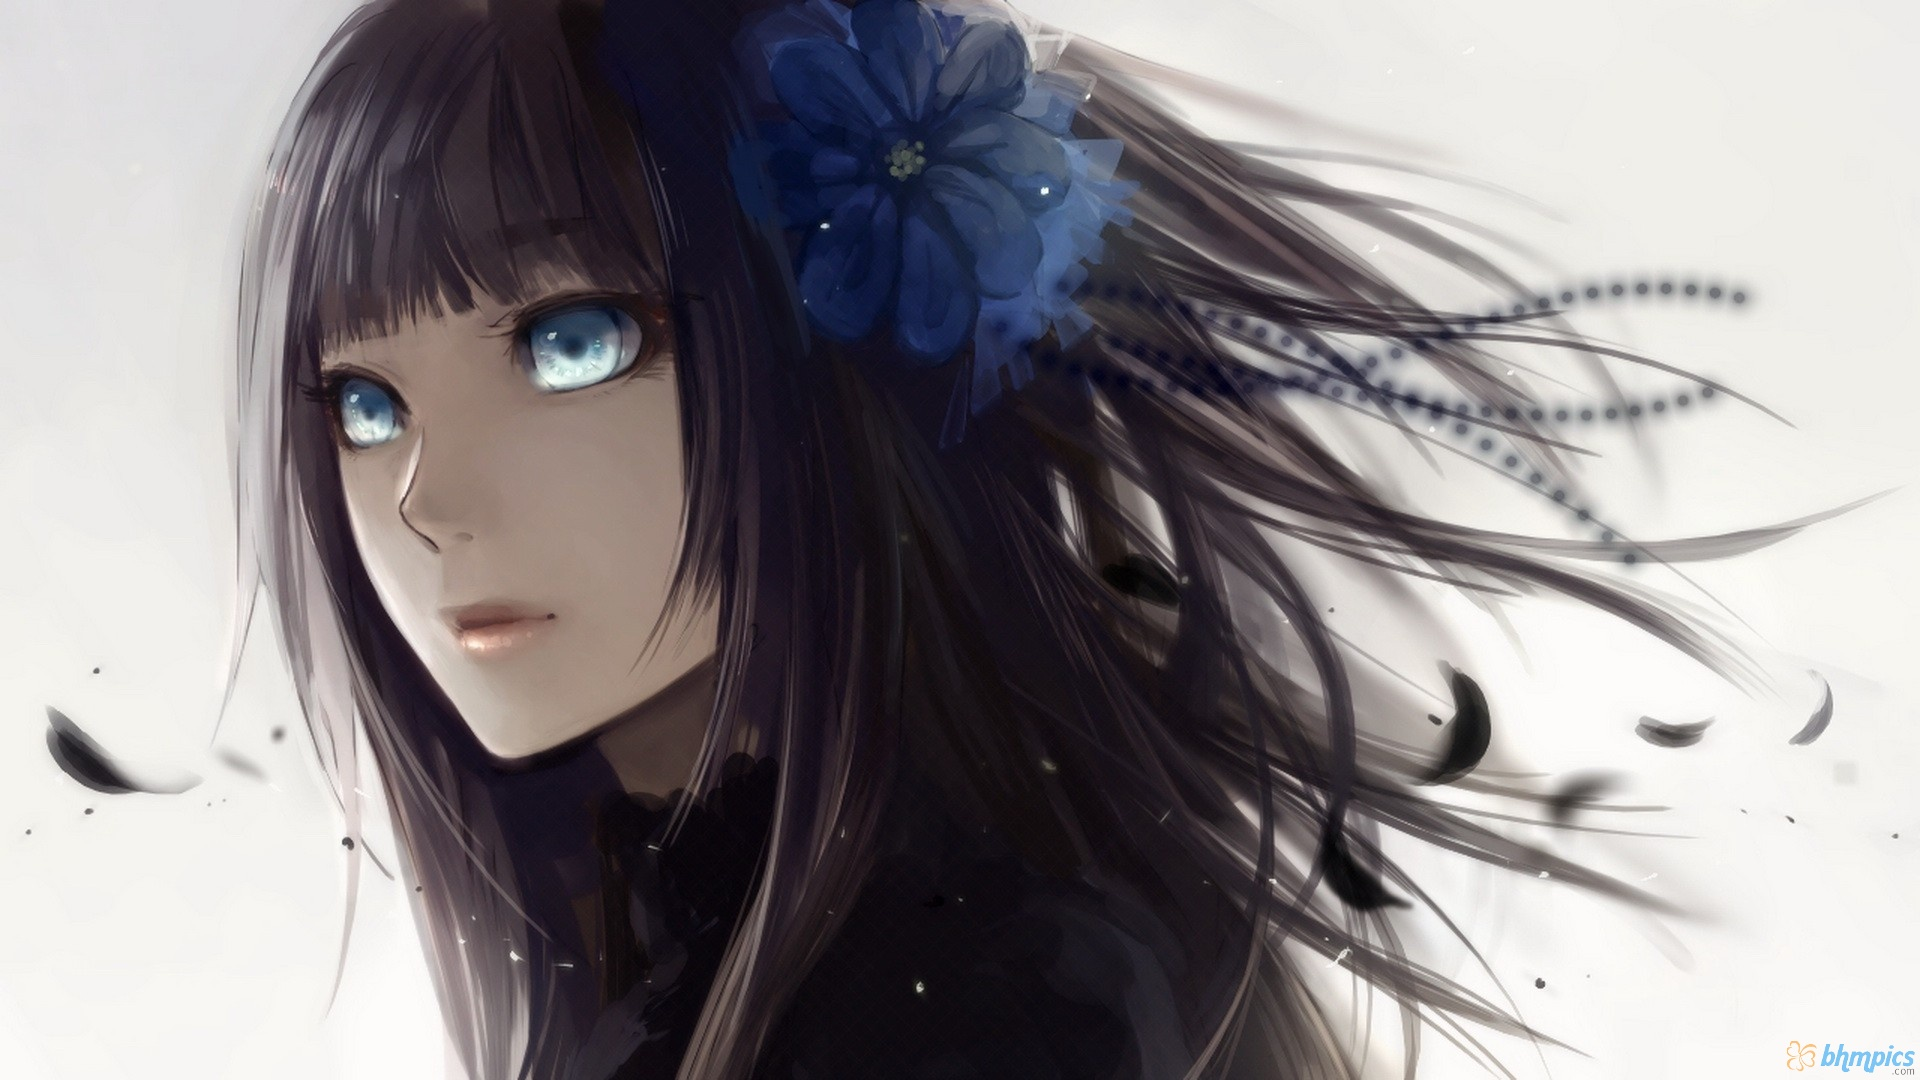 Tumblr static anime girl with black hair and blue eyes 1920x1080